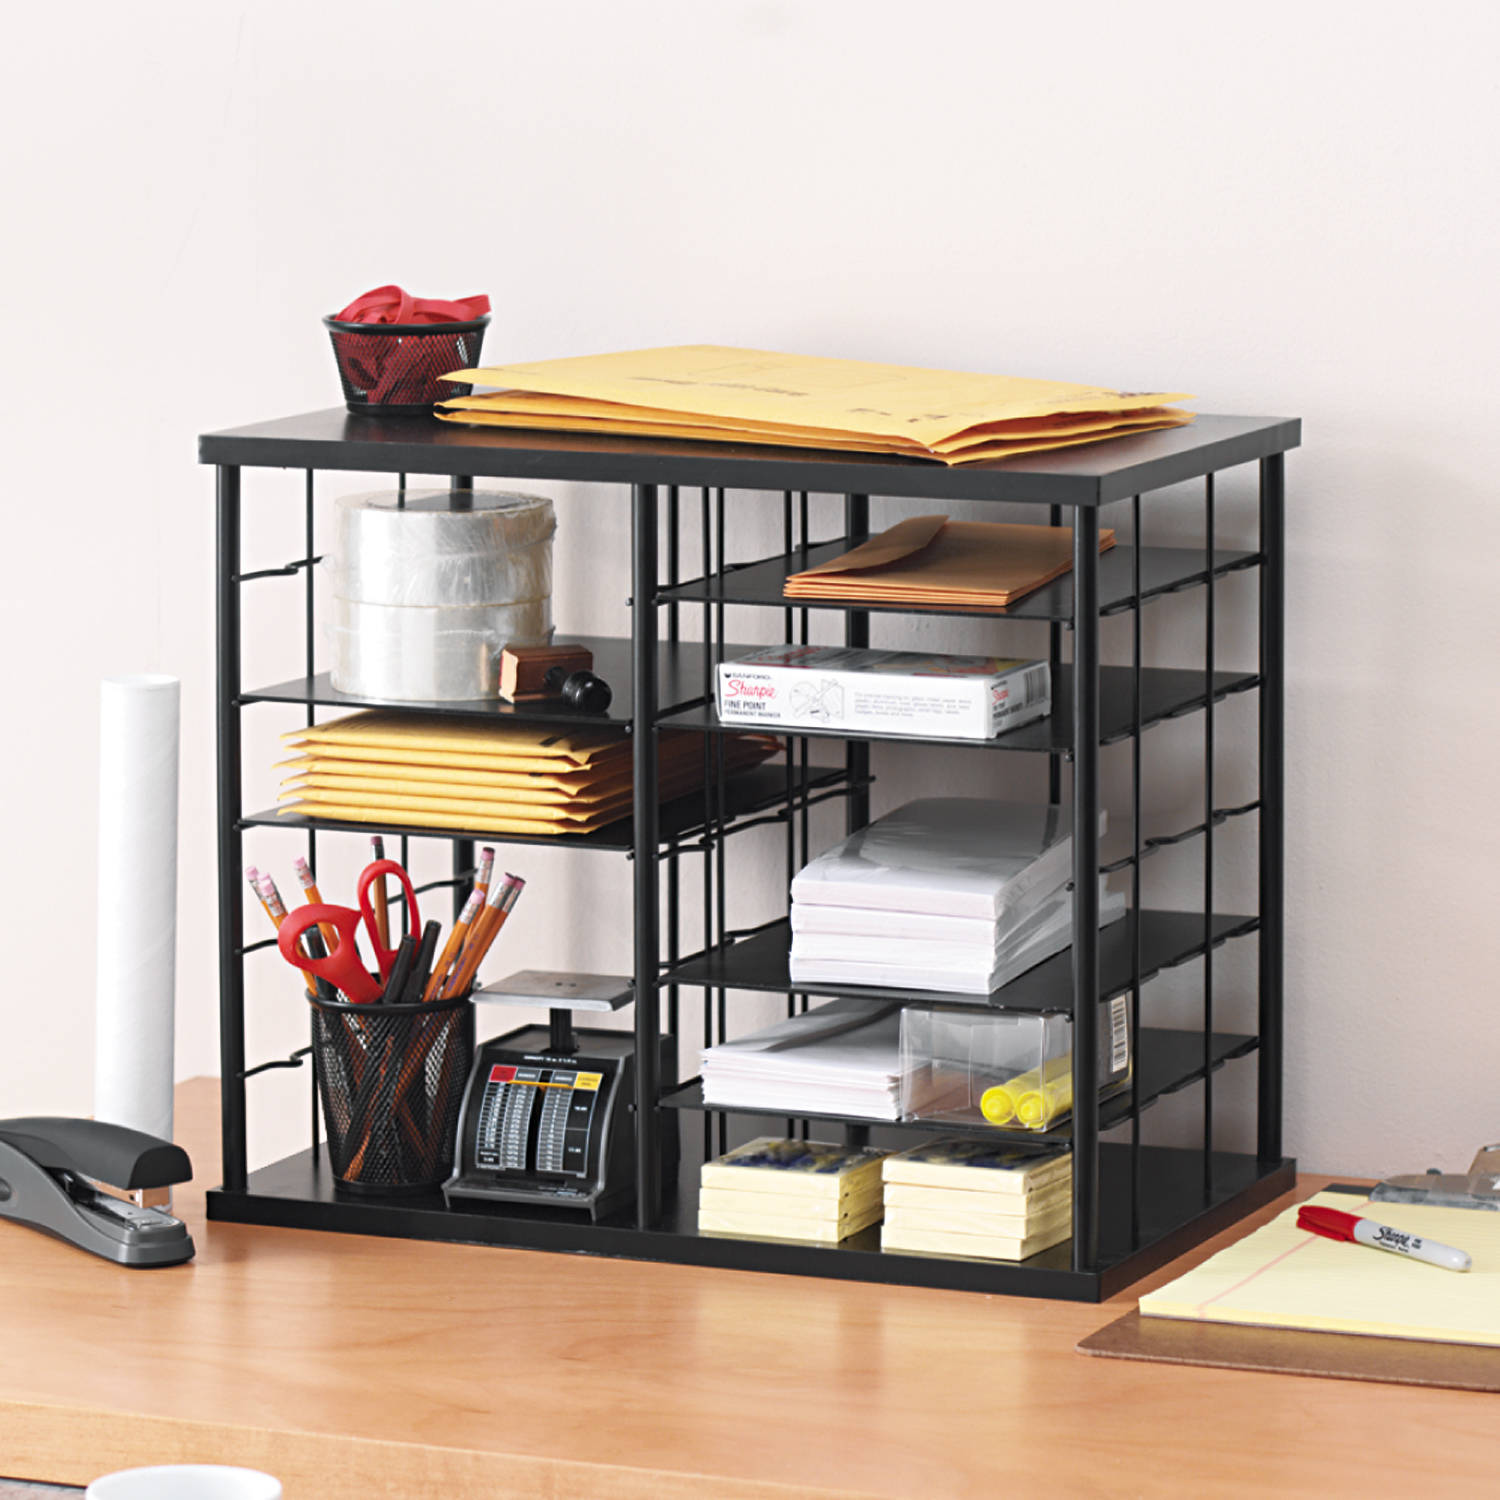 Rubbermaid 12 Slot Organizer, MDF, Desktop Sorter, Black